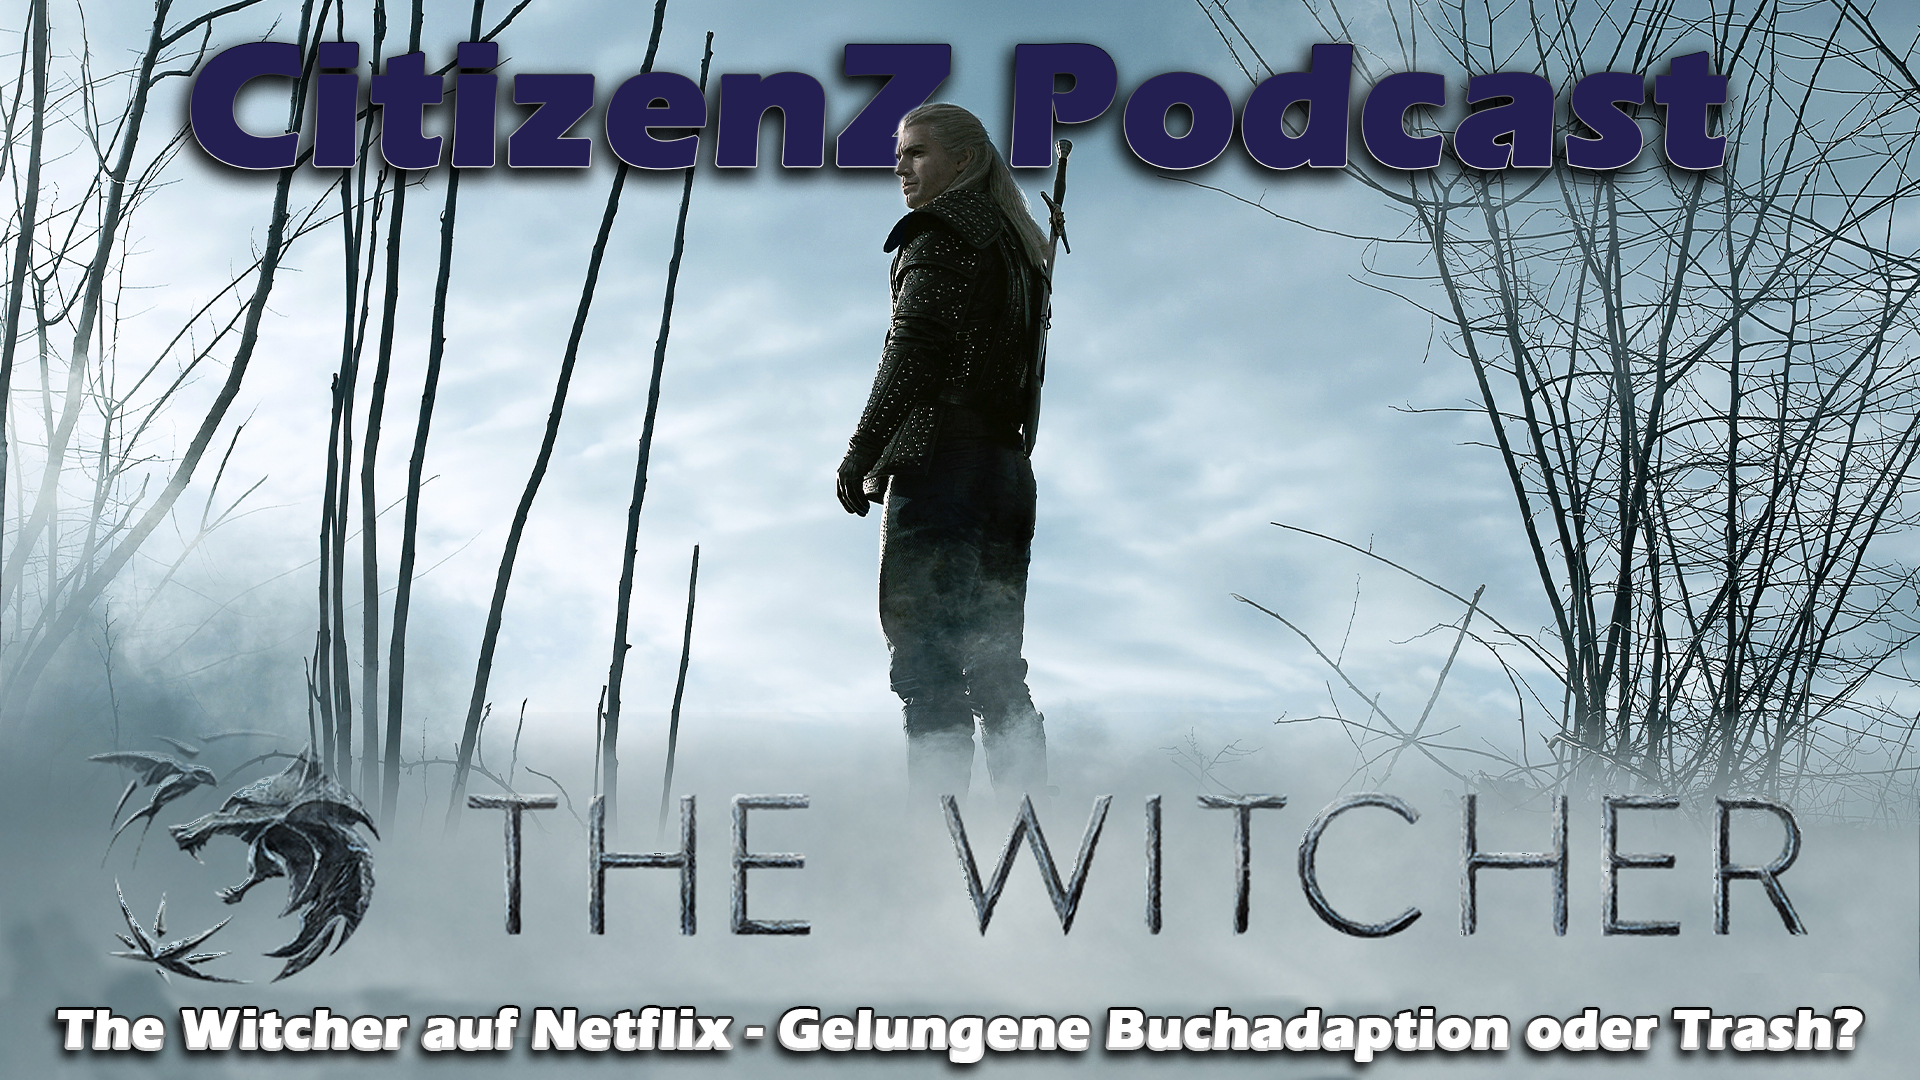 The Witcher auf Netflix - Gelungene Buchadaption oder Trash? [Podcast]